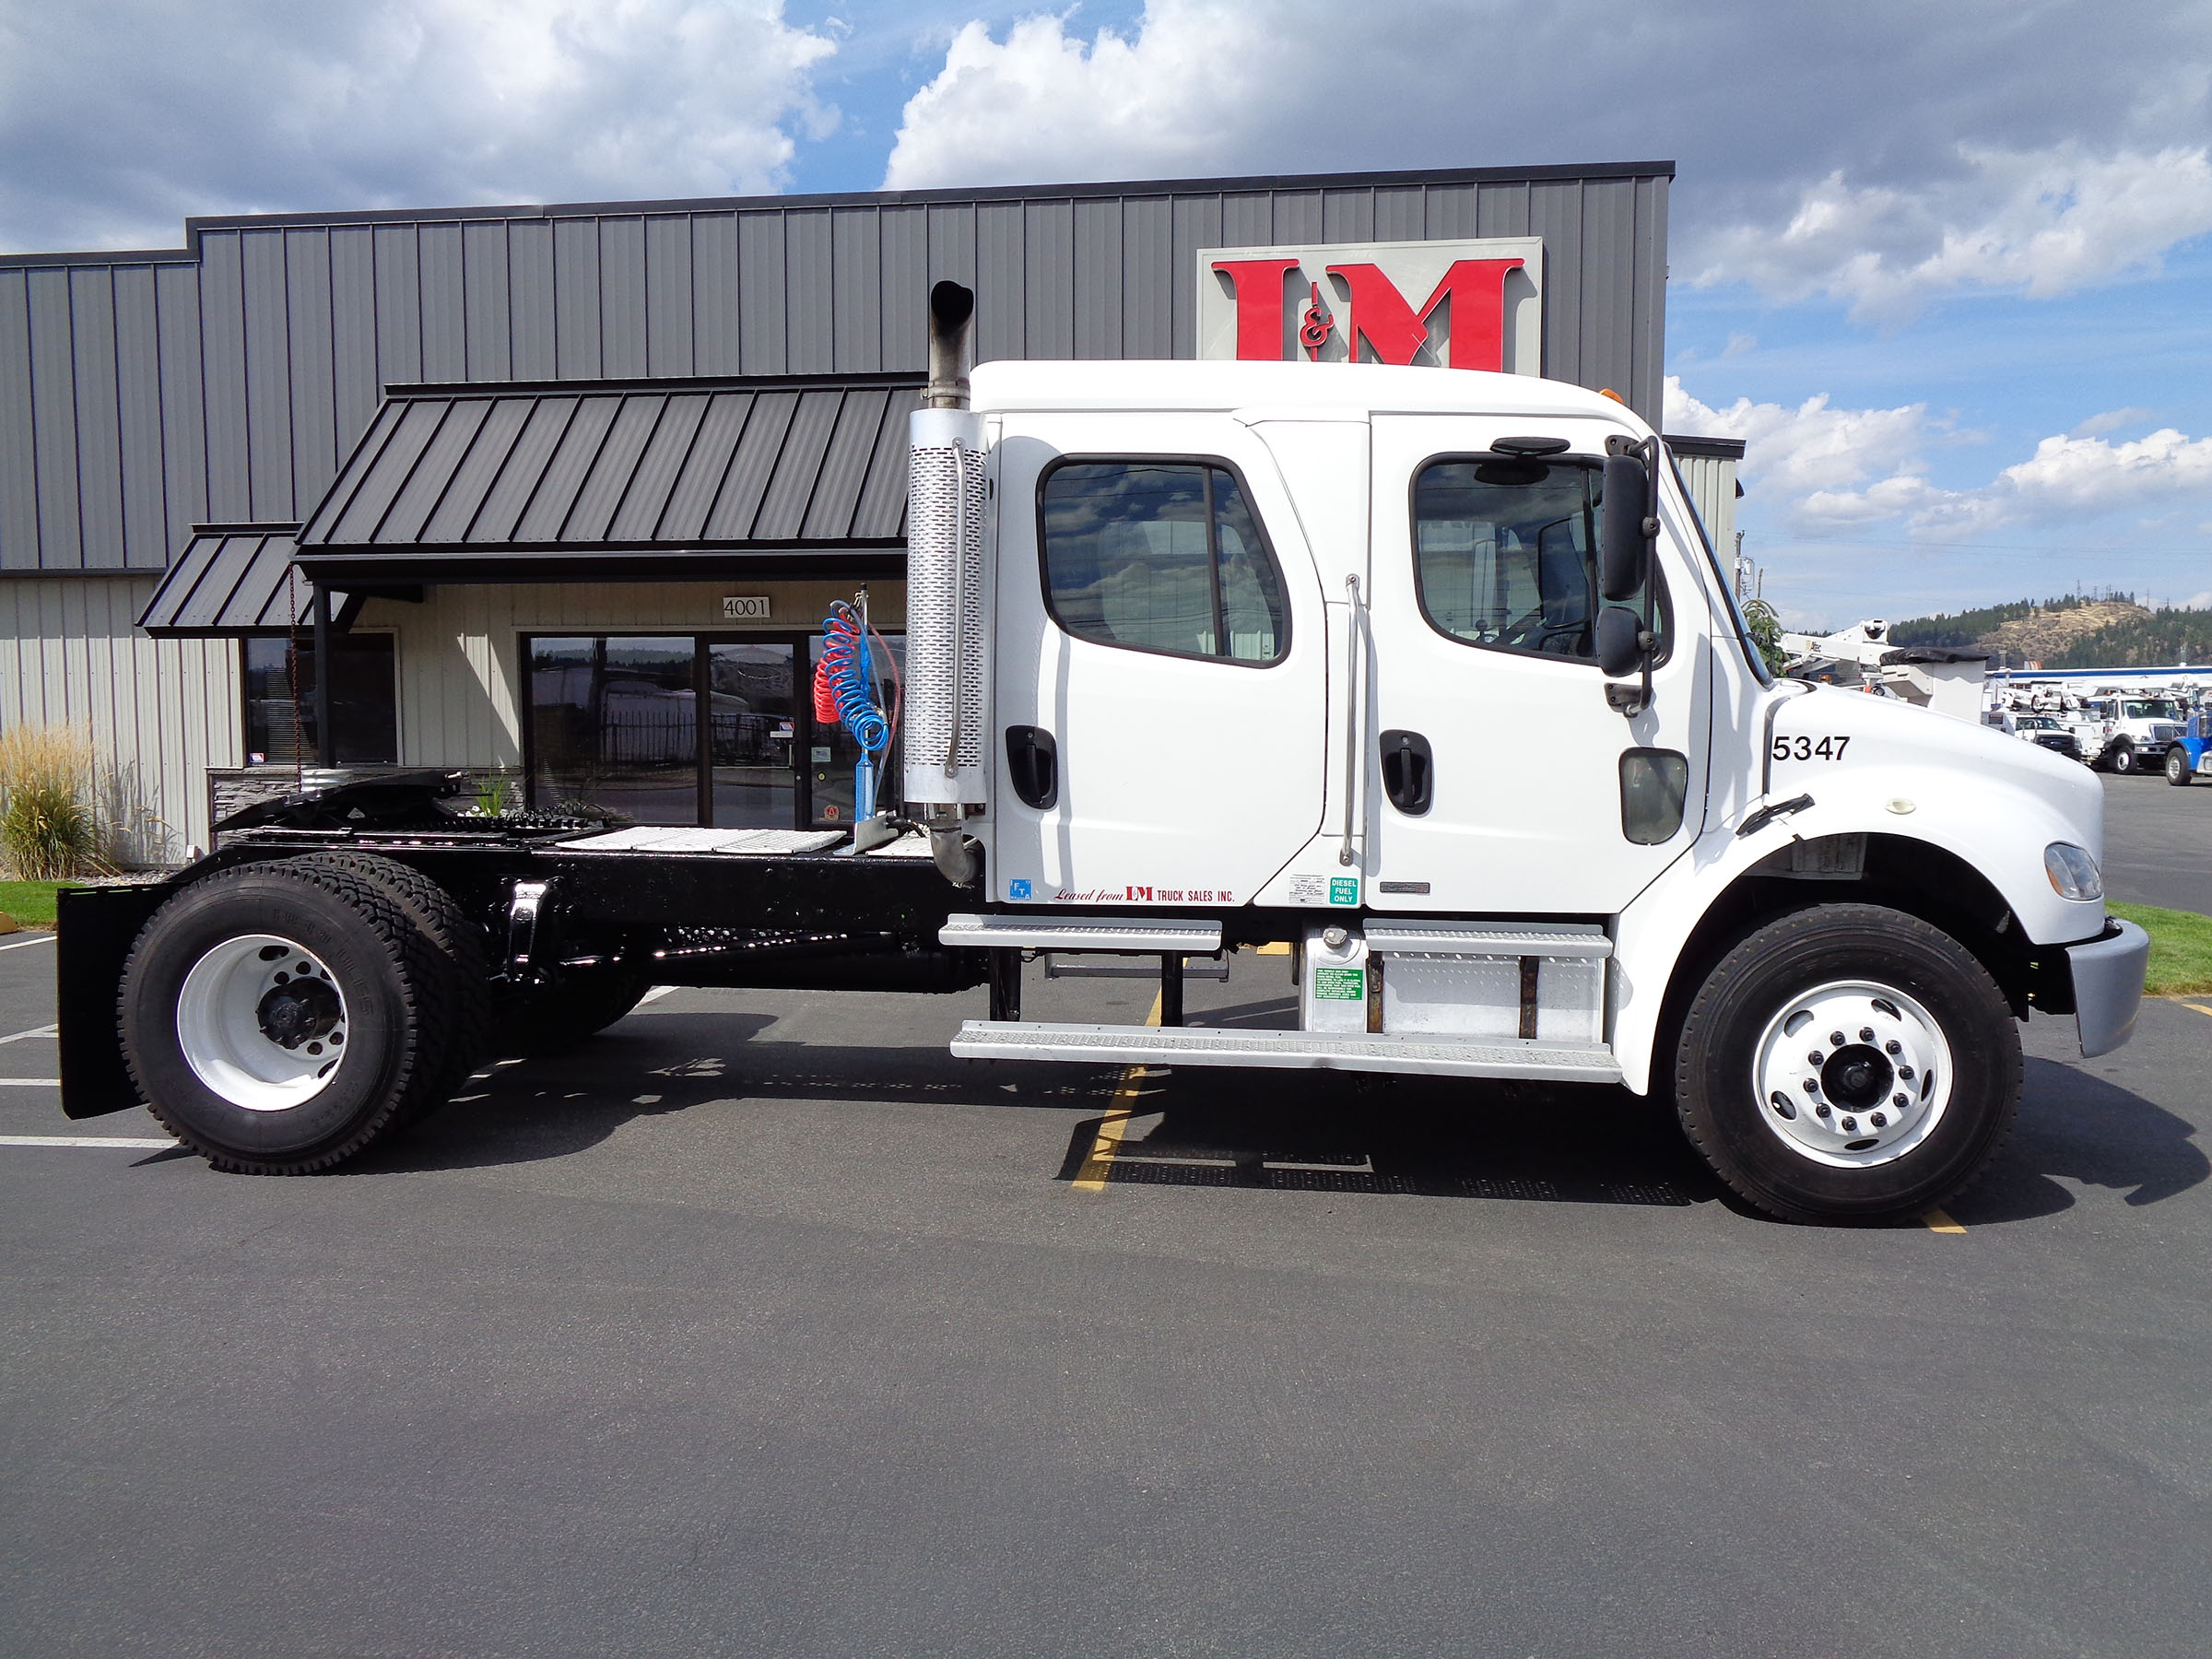 2005 FREIGHTLINER M2-106 5347-SIDE-VIEW